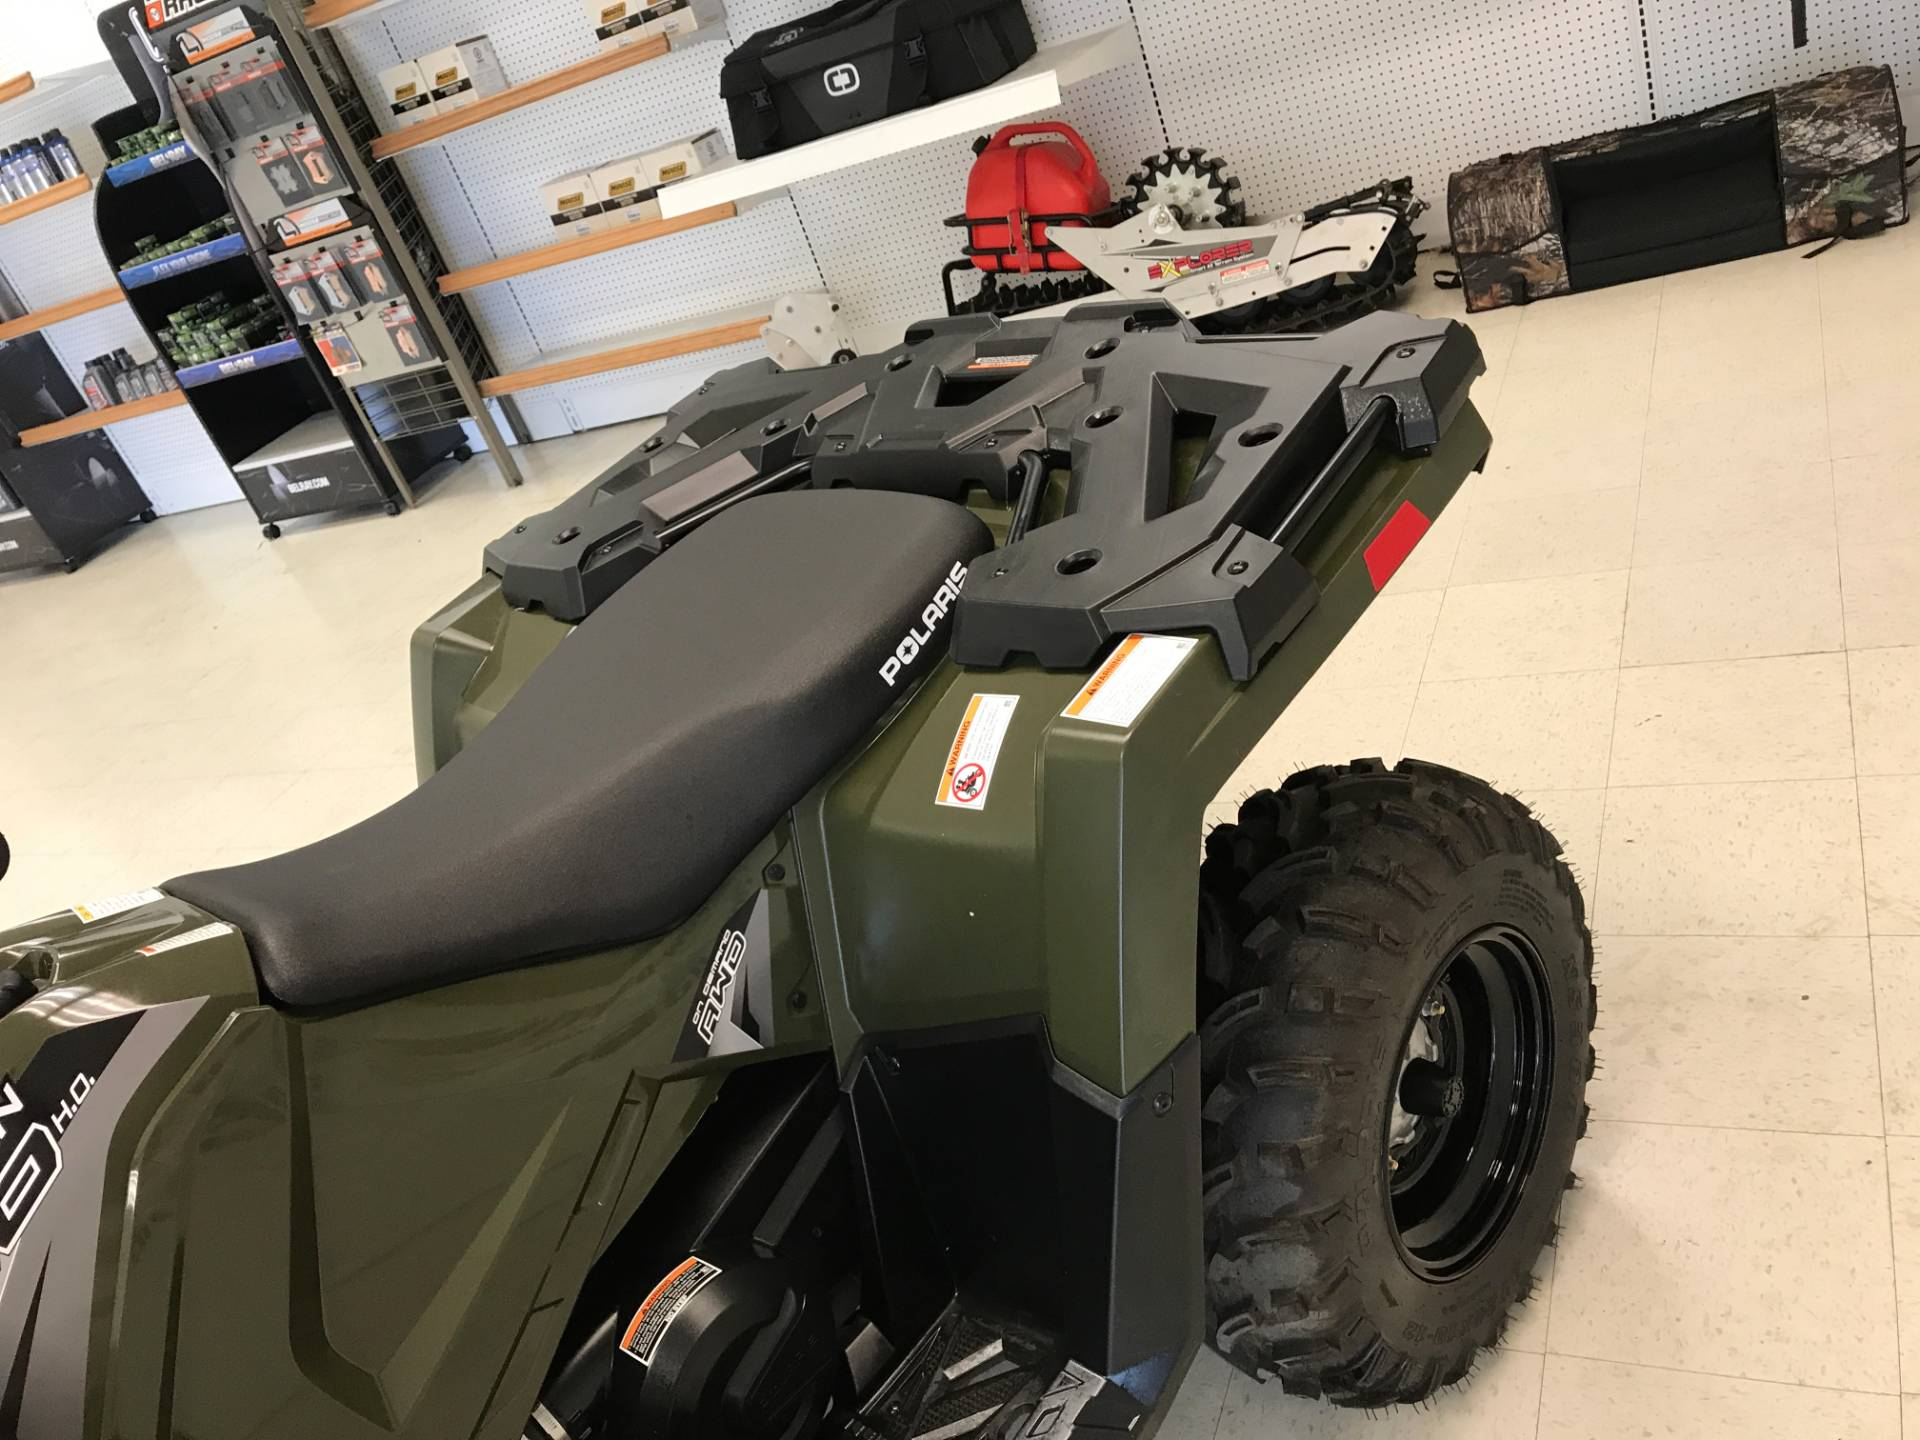 2017 Polaris Sportsman 450 H.O. in Herkimer, New York